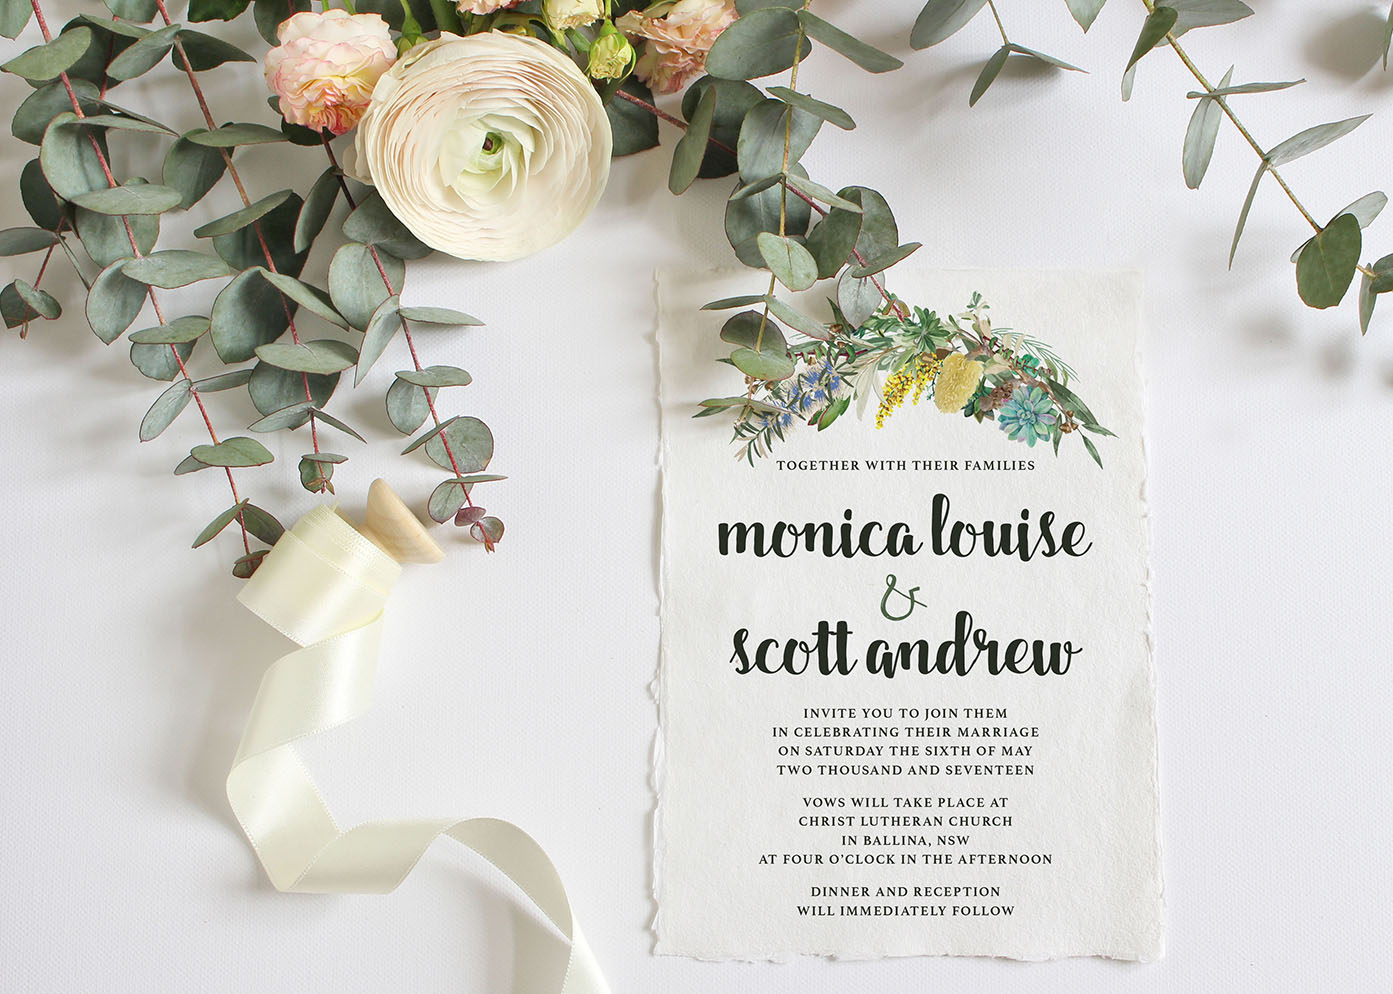 Australian Native flowers, wedding invitation, succulent greenery, eucalyptus, deckled edge paper